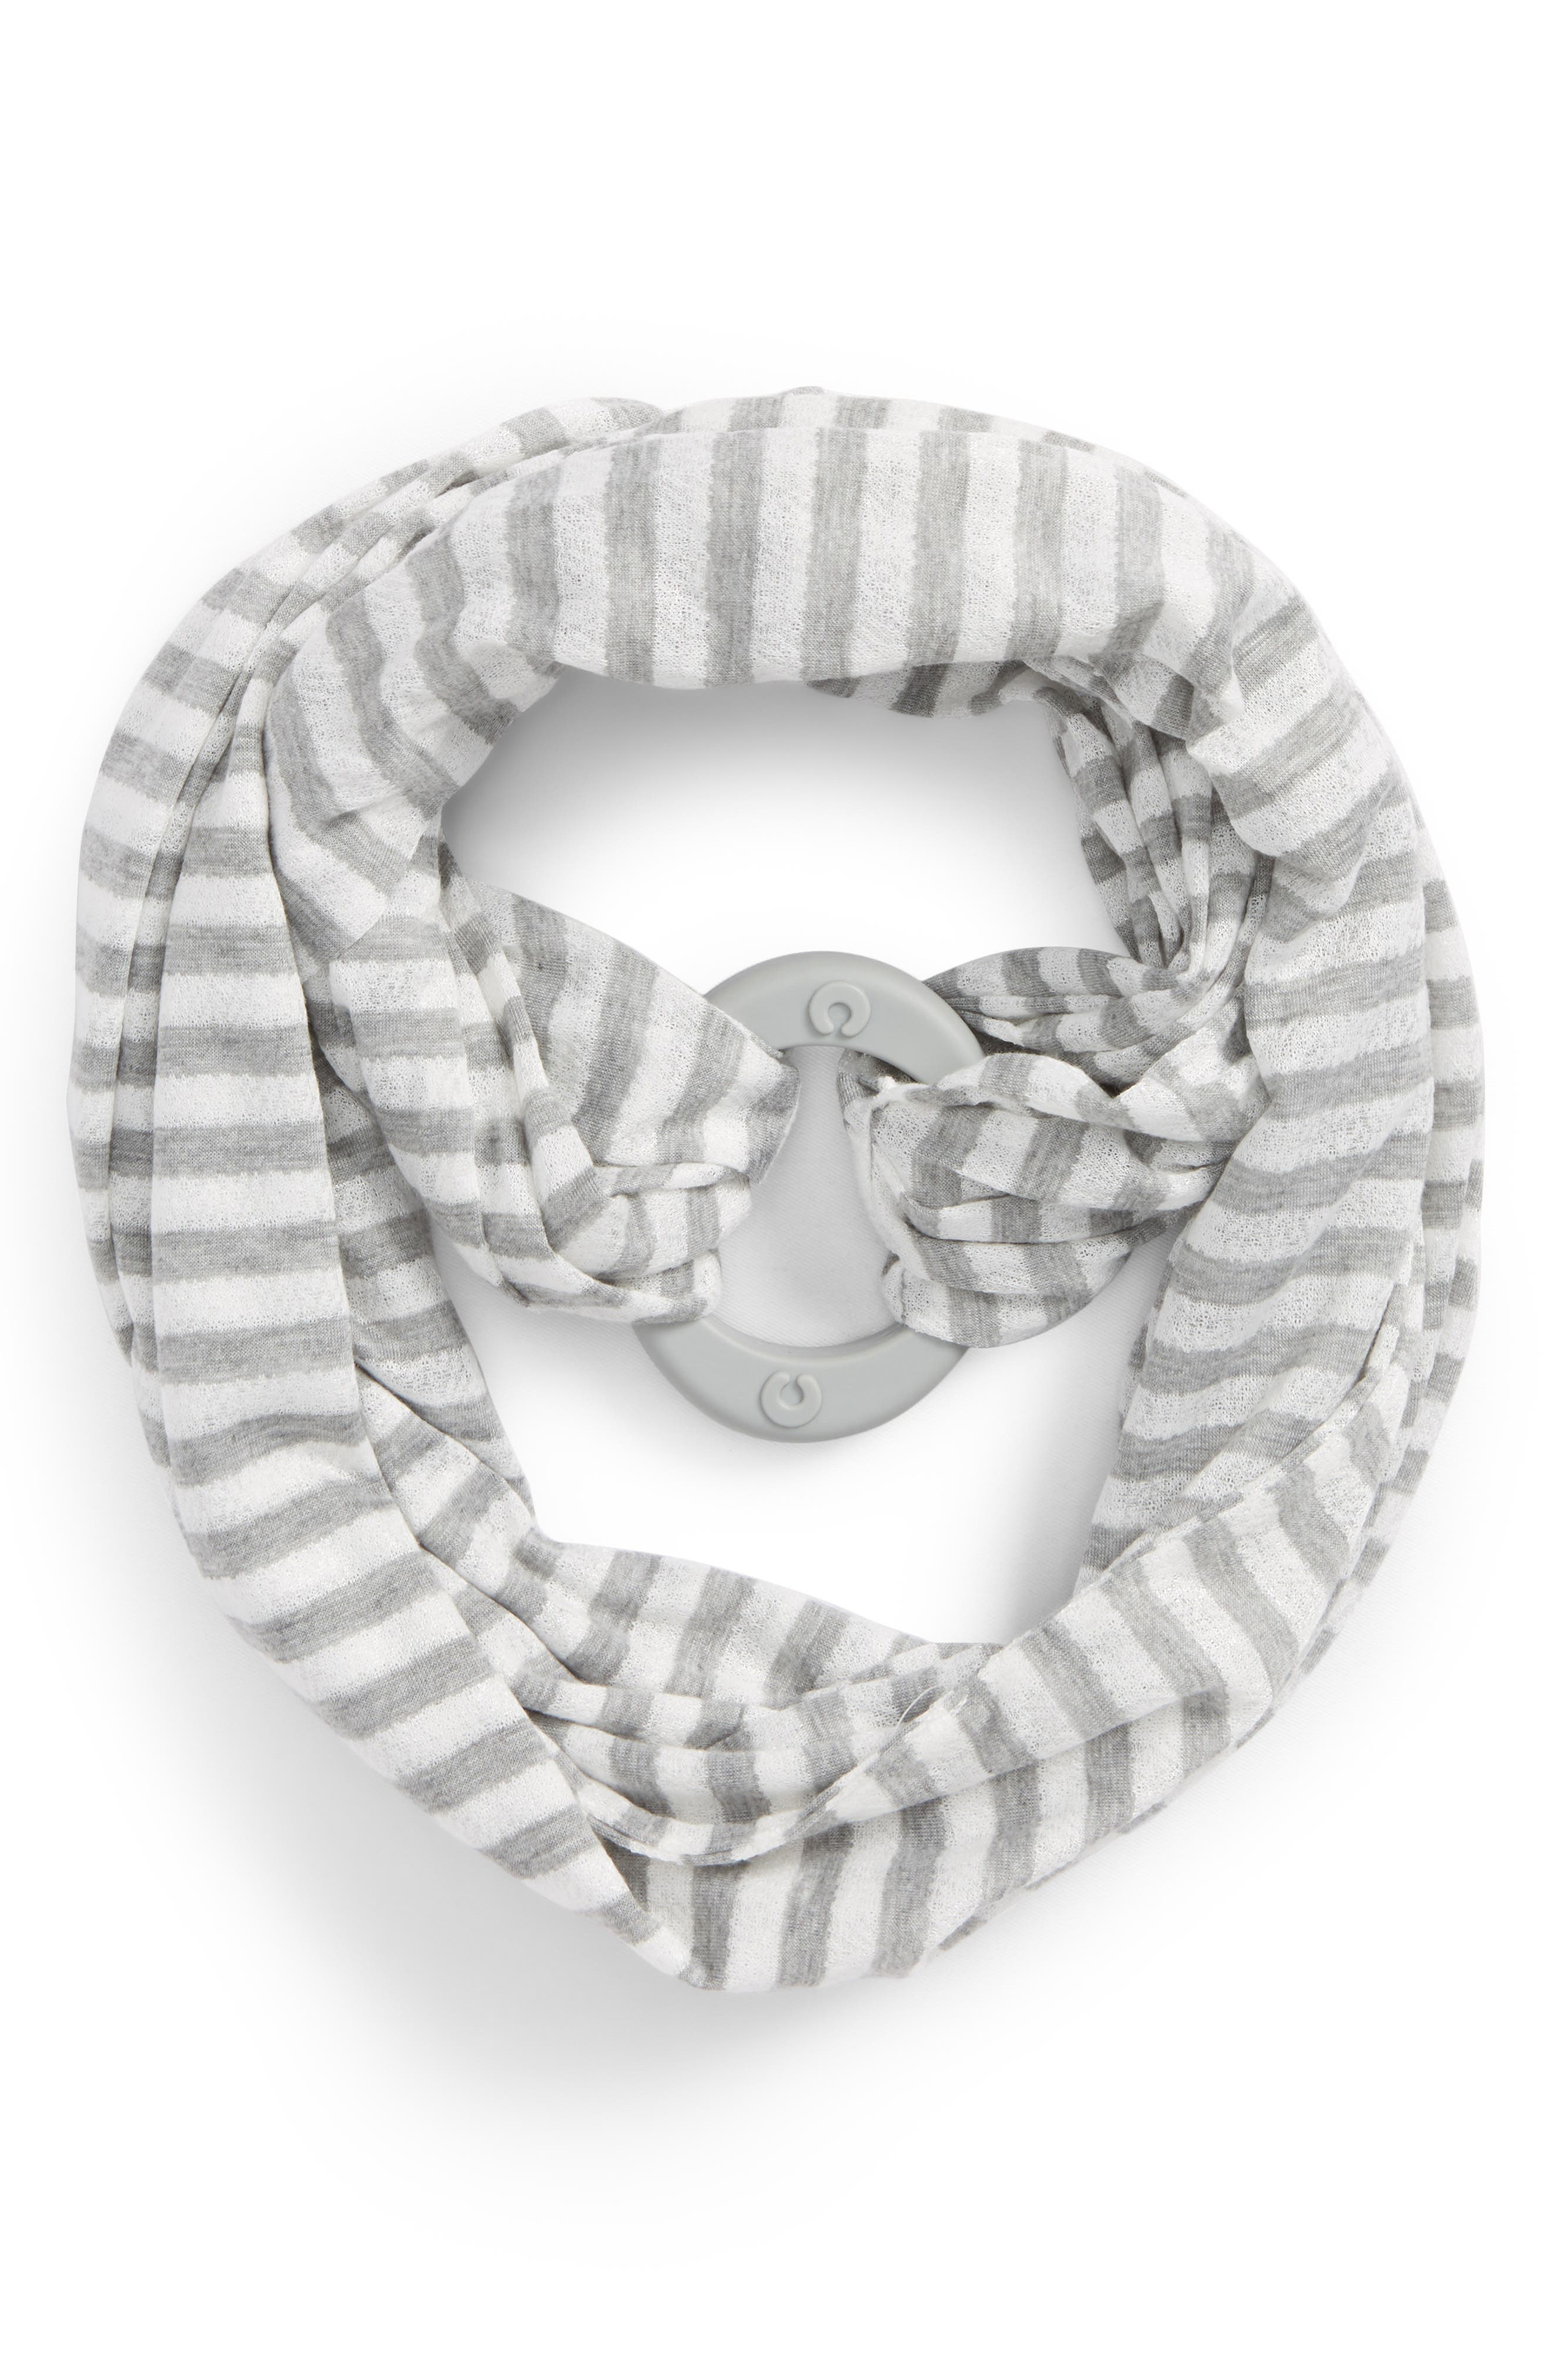 Teething Infinity Scarf,                             Main thumbnail 1, color,                             Gray And White Stripes